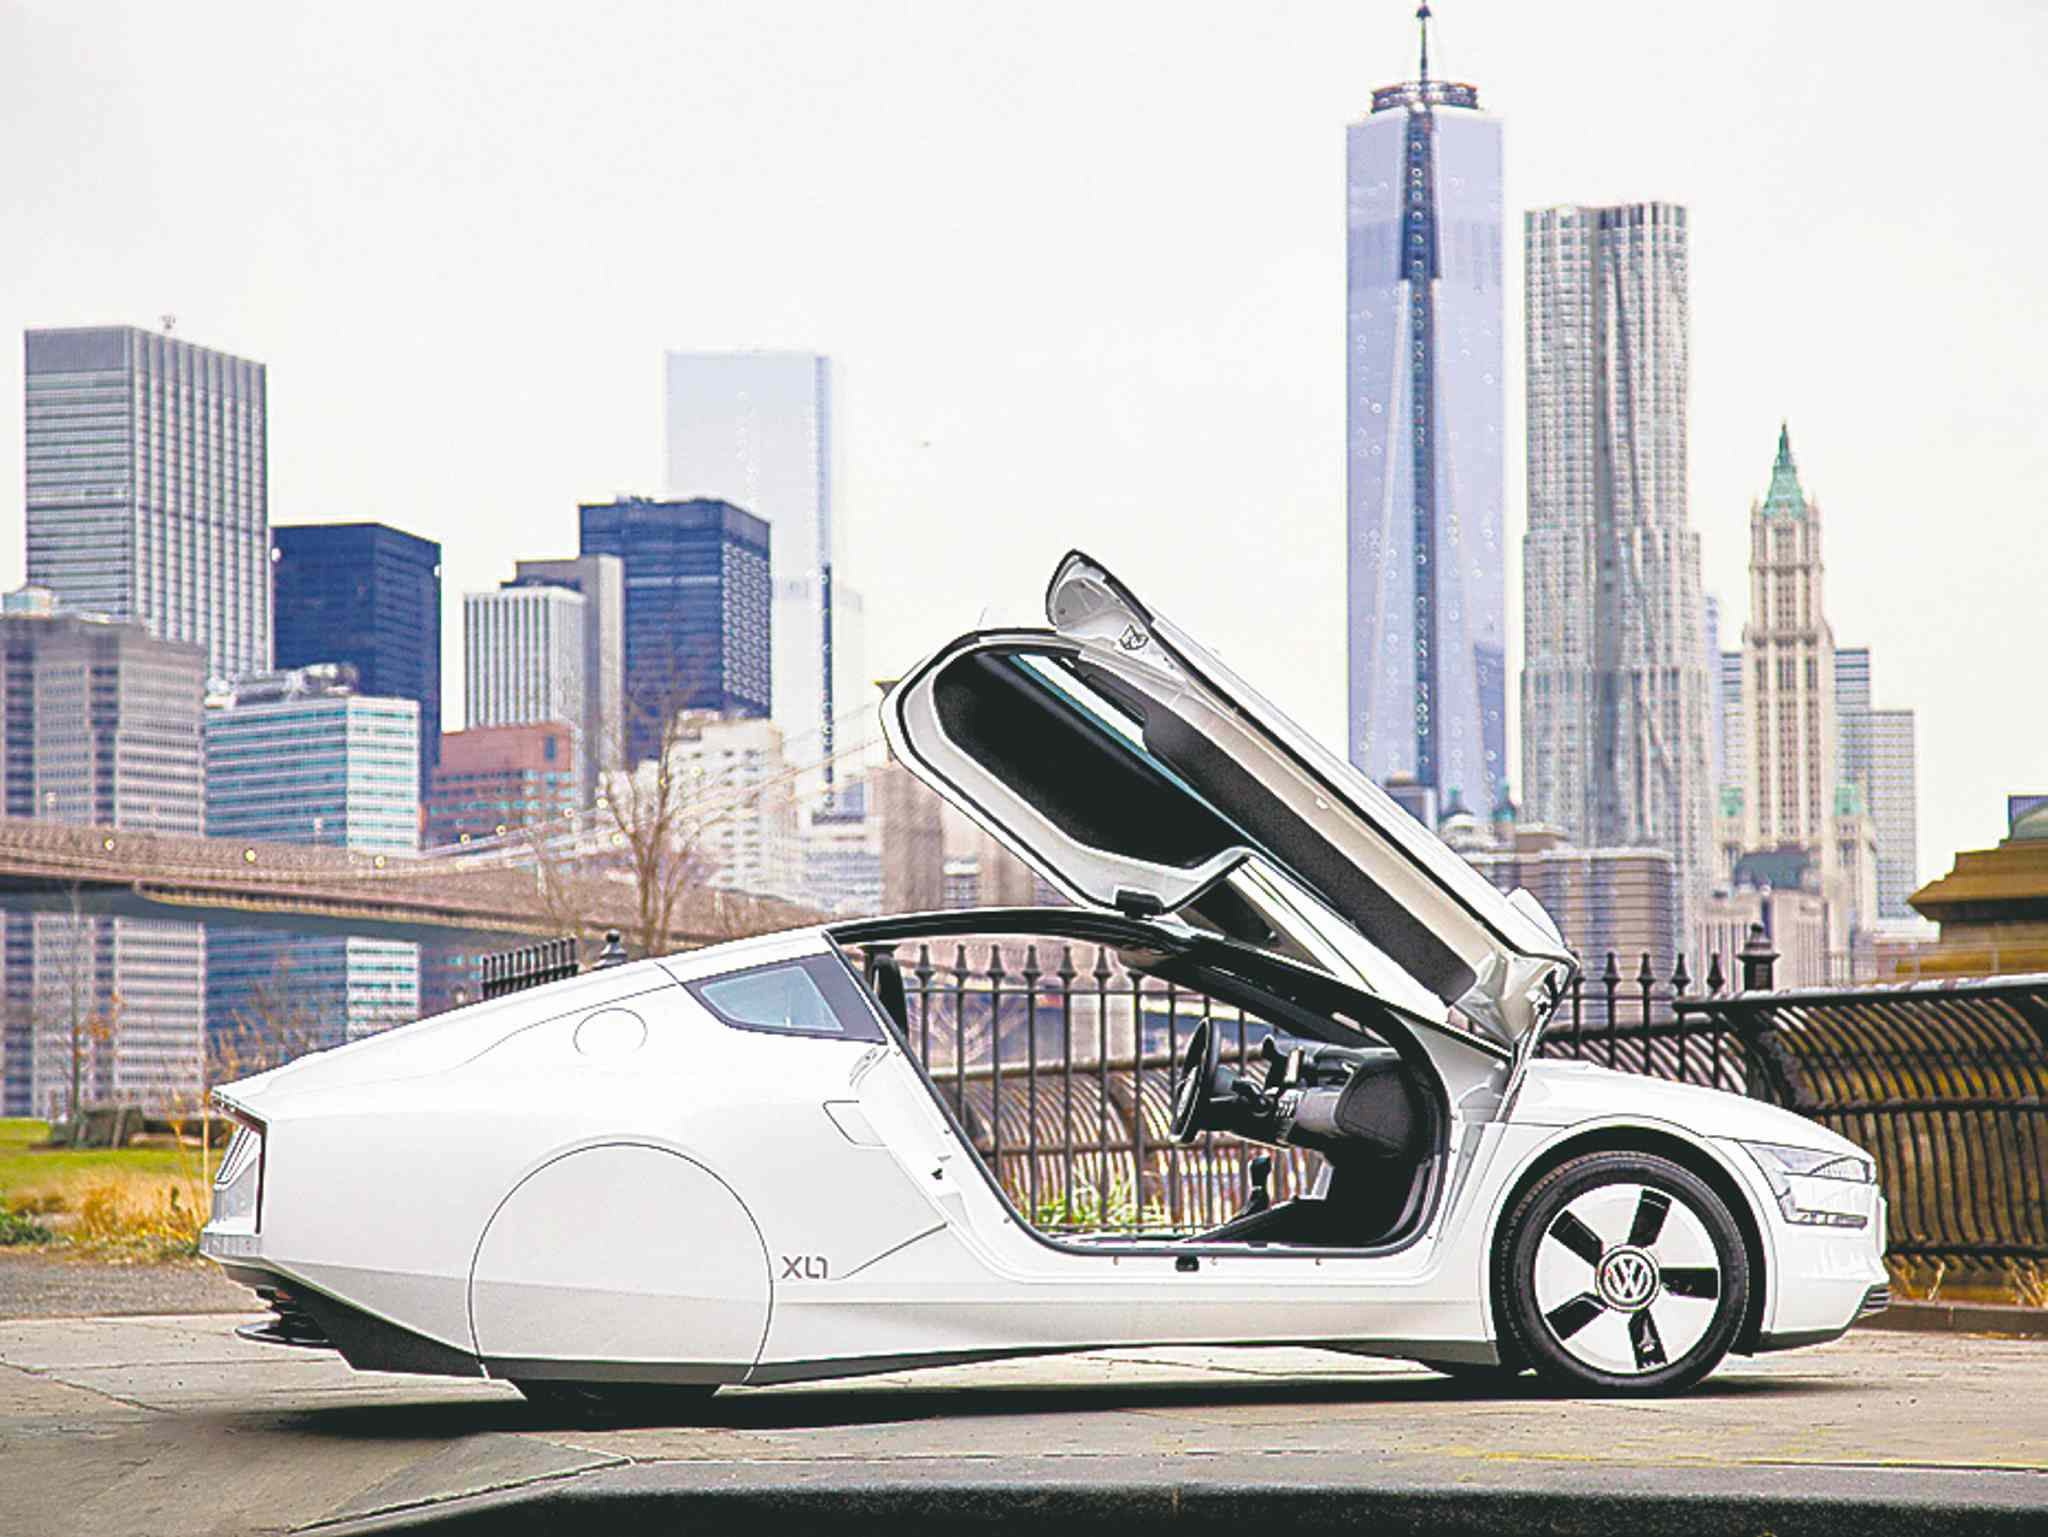 Getting inside is a matter of gliding through its gull-wing doors.